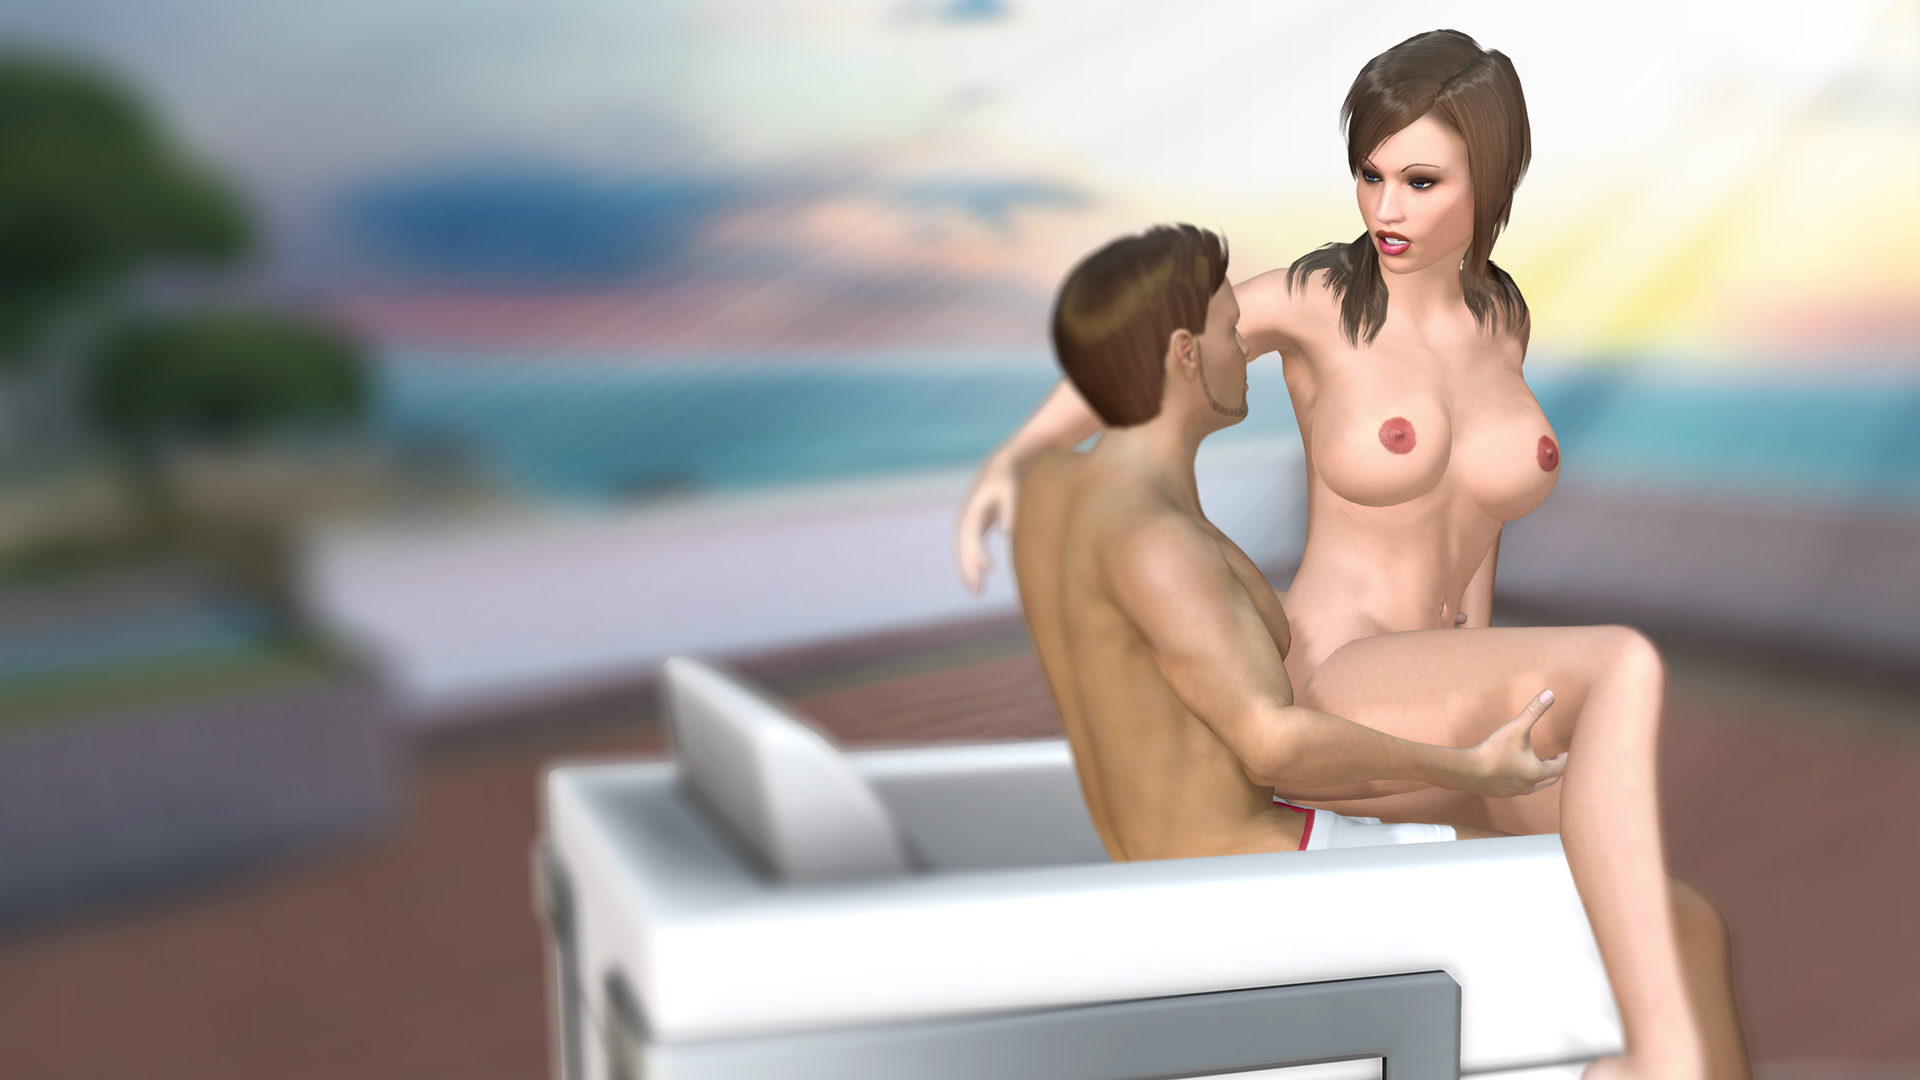 Download sex games 1 фотография